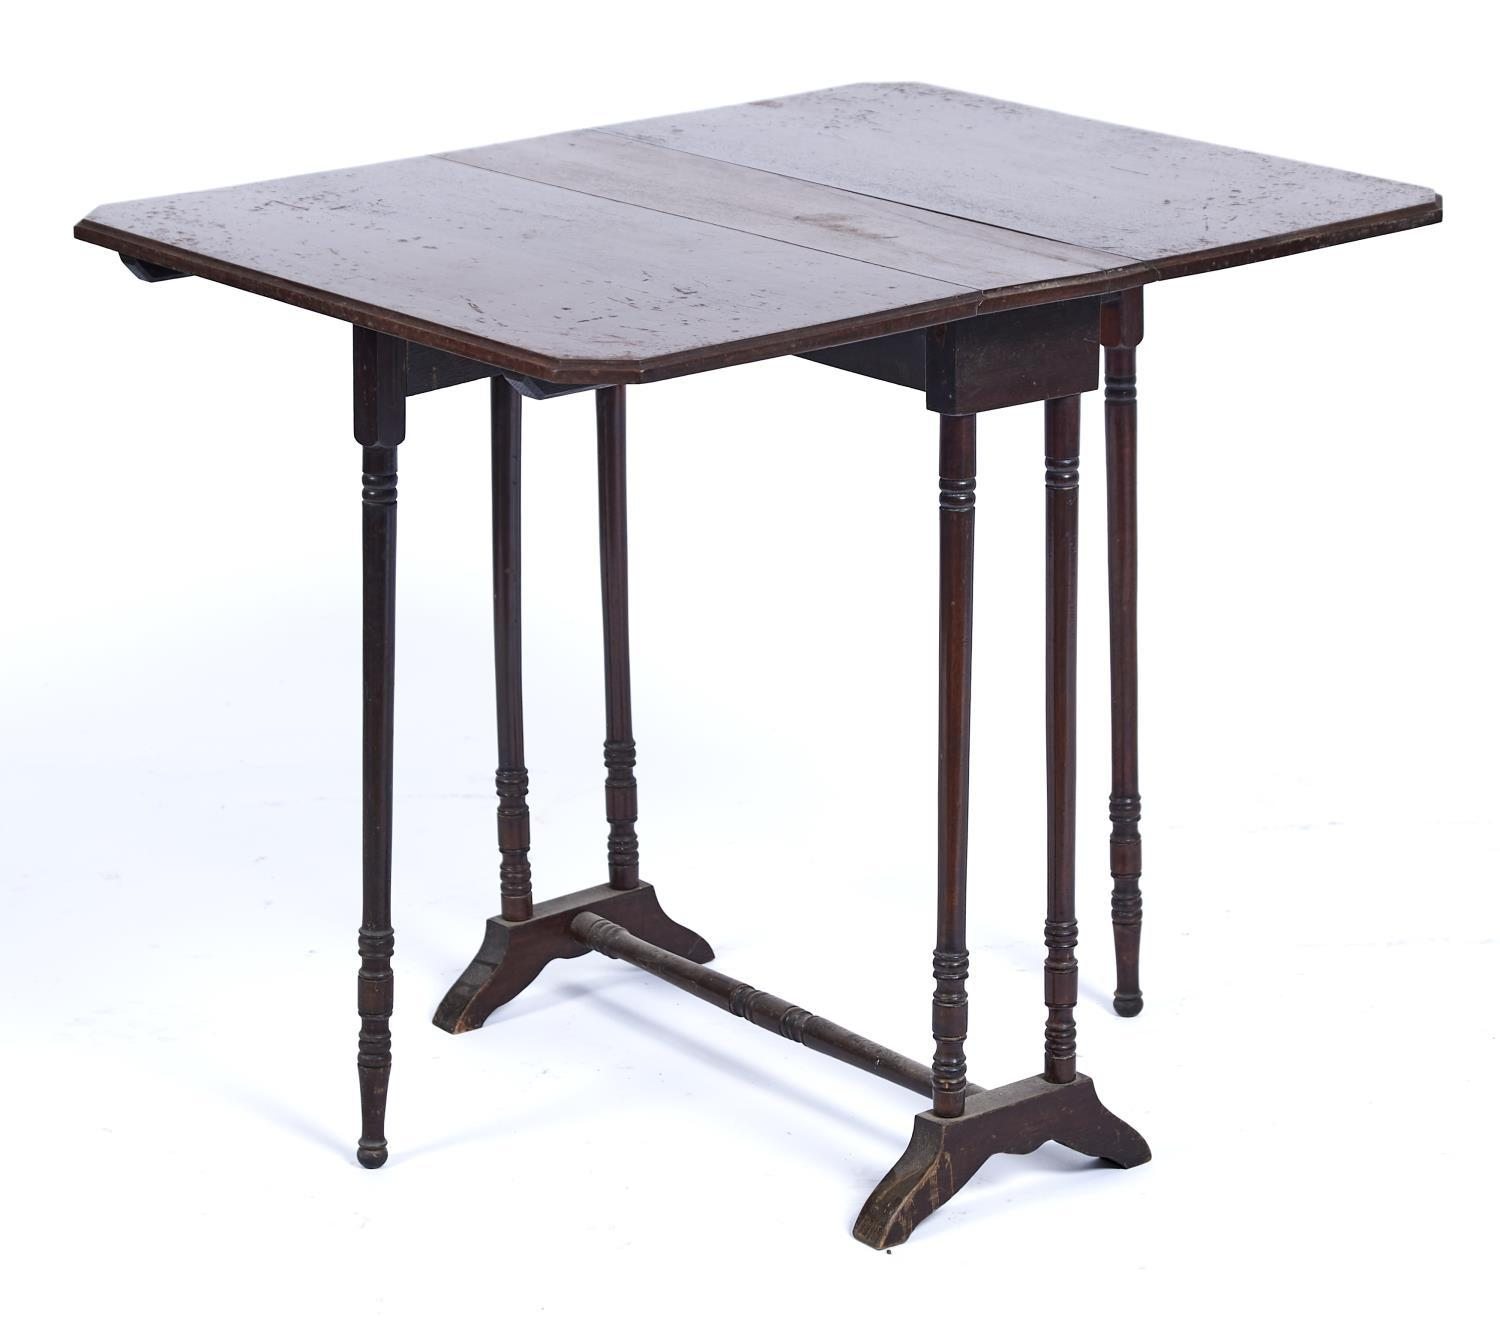 A VICTORIAN WALNUT SUTHERLAND TABLE, 19TH C, 63CM H; 60 X 74CM Minor old scratches - Image 2 of 2